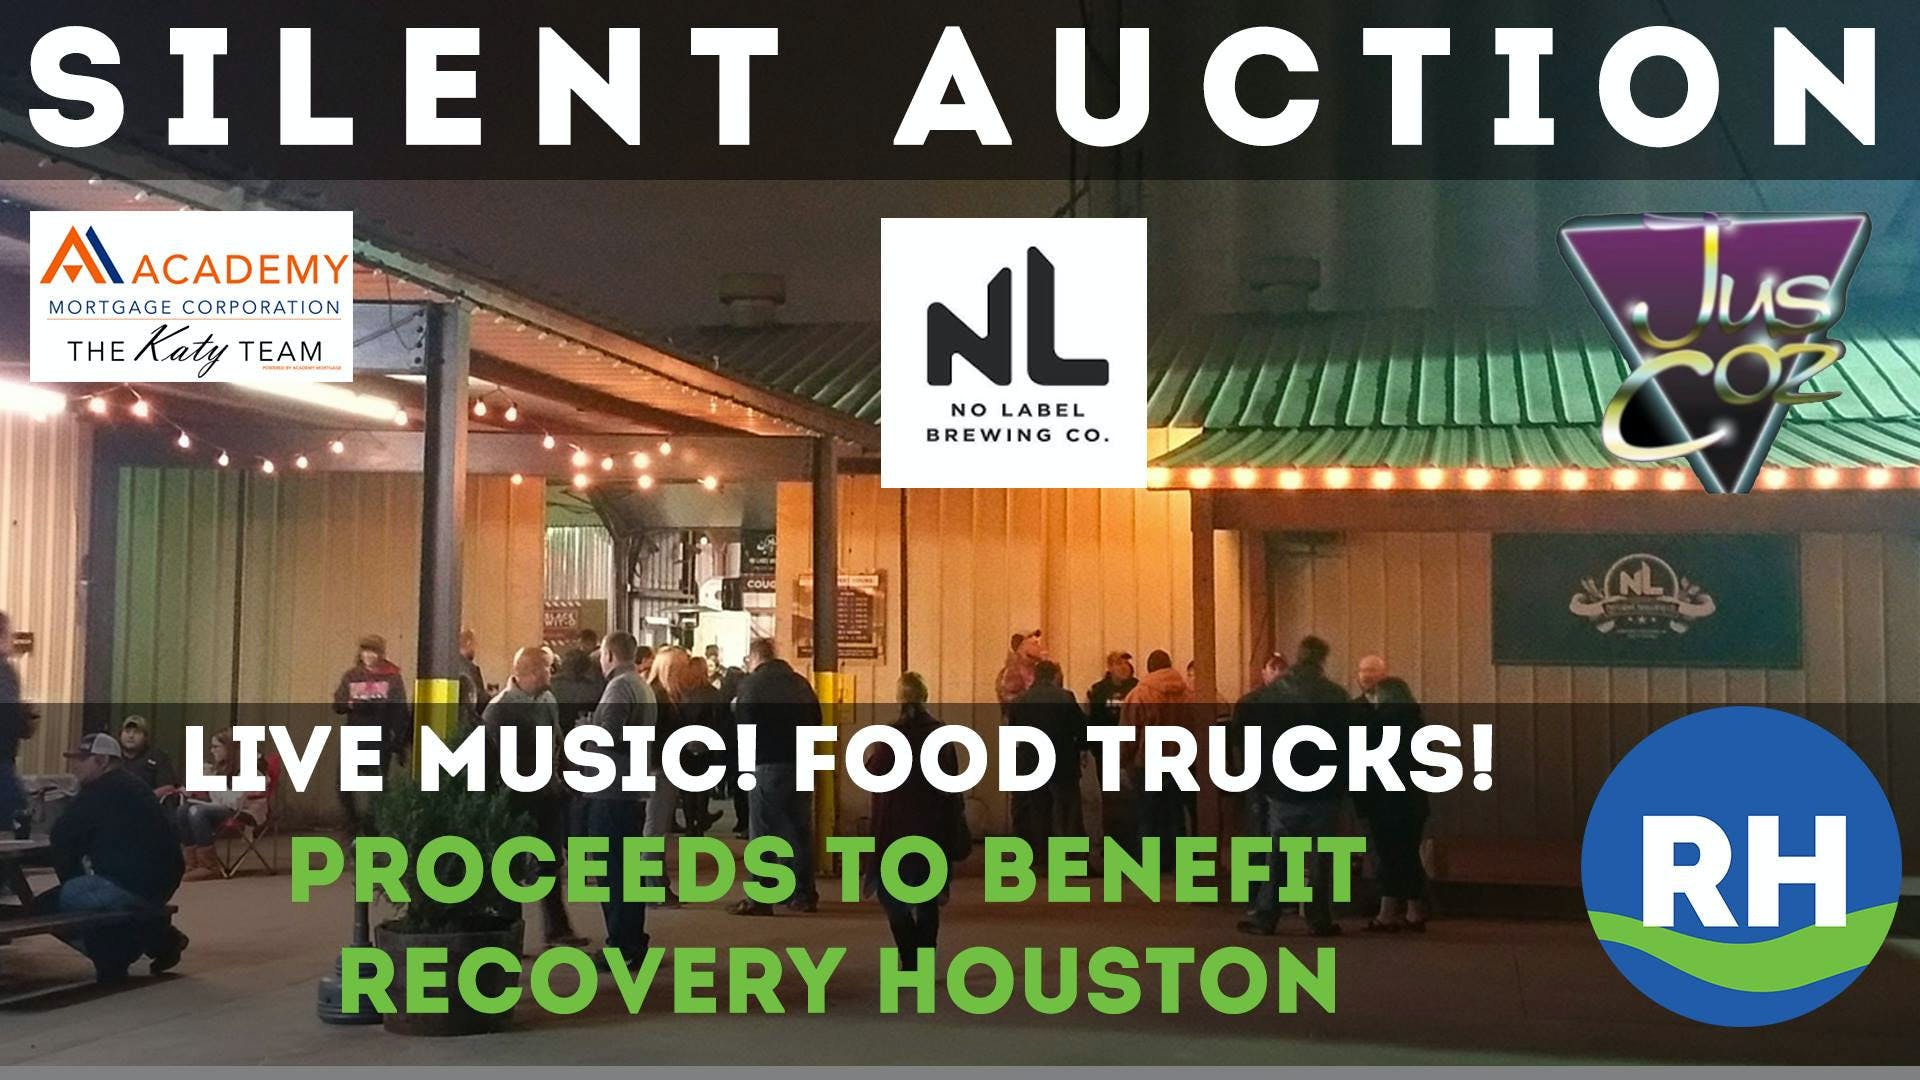 Fundraiser for Recovery Houston | #MyFortBend